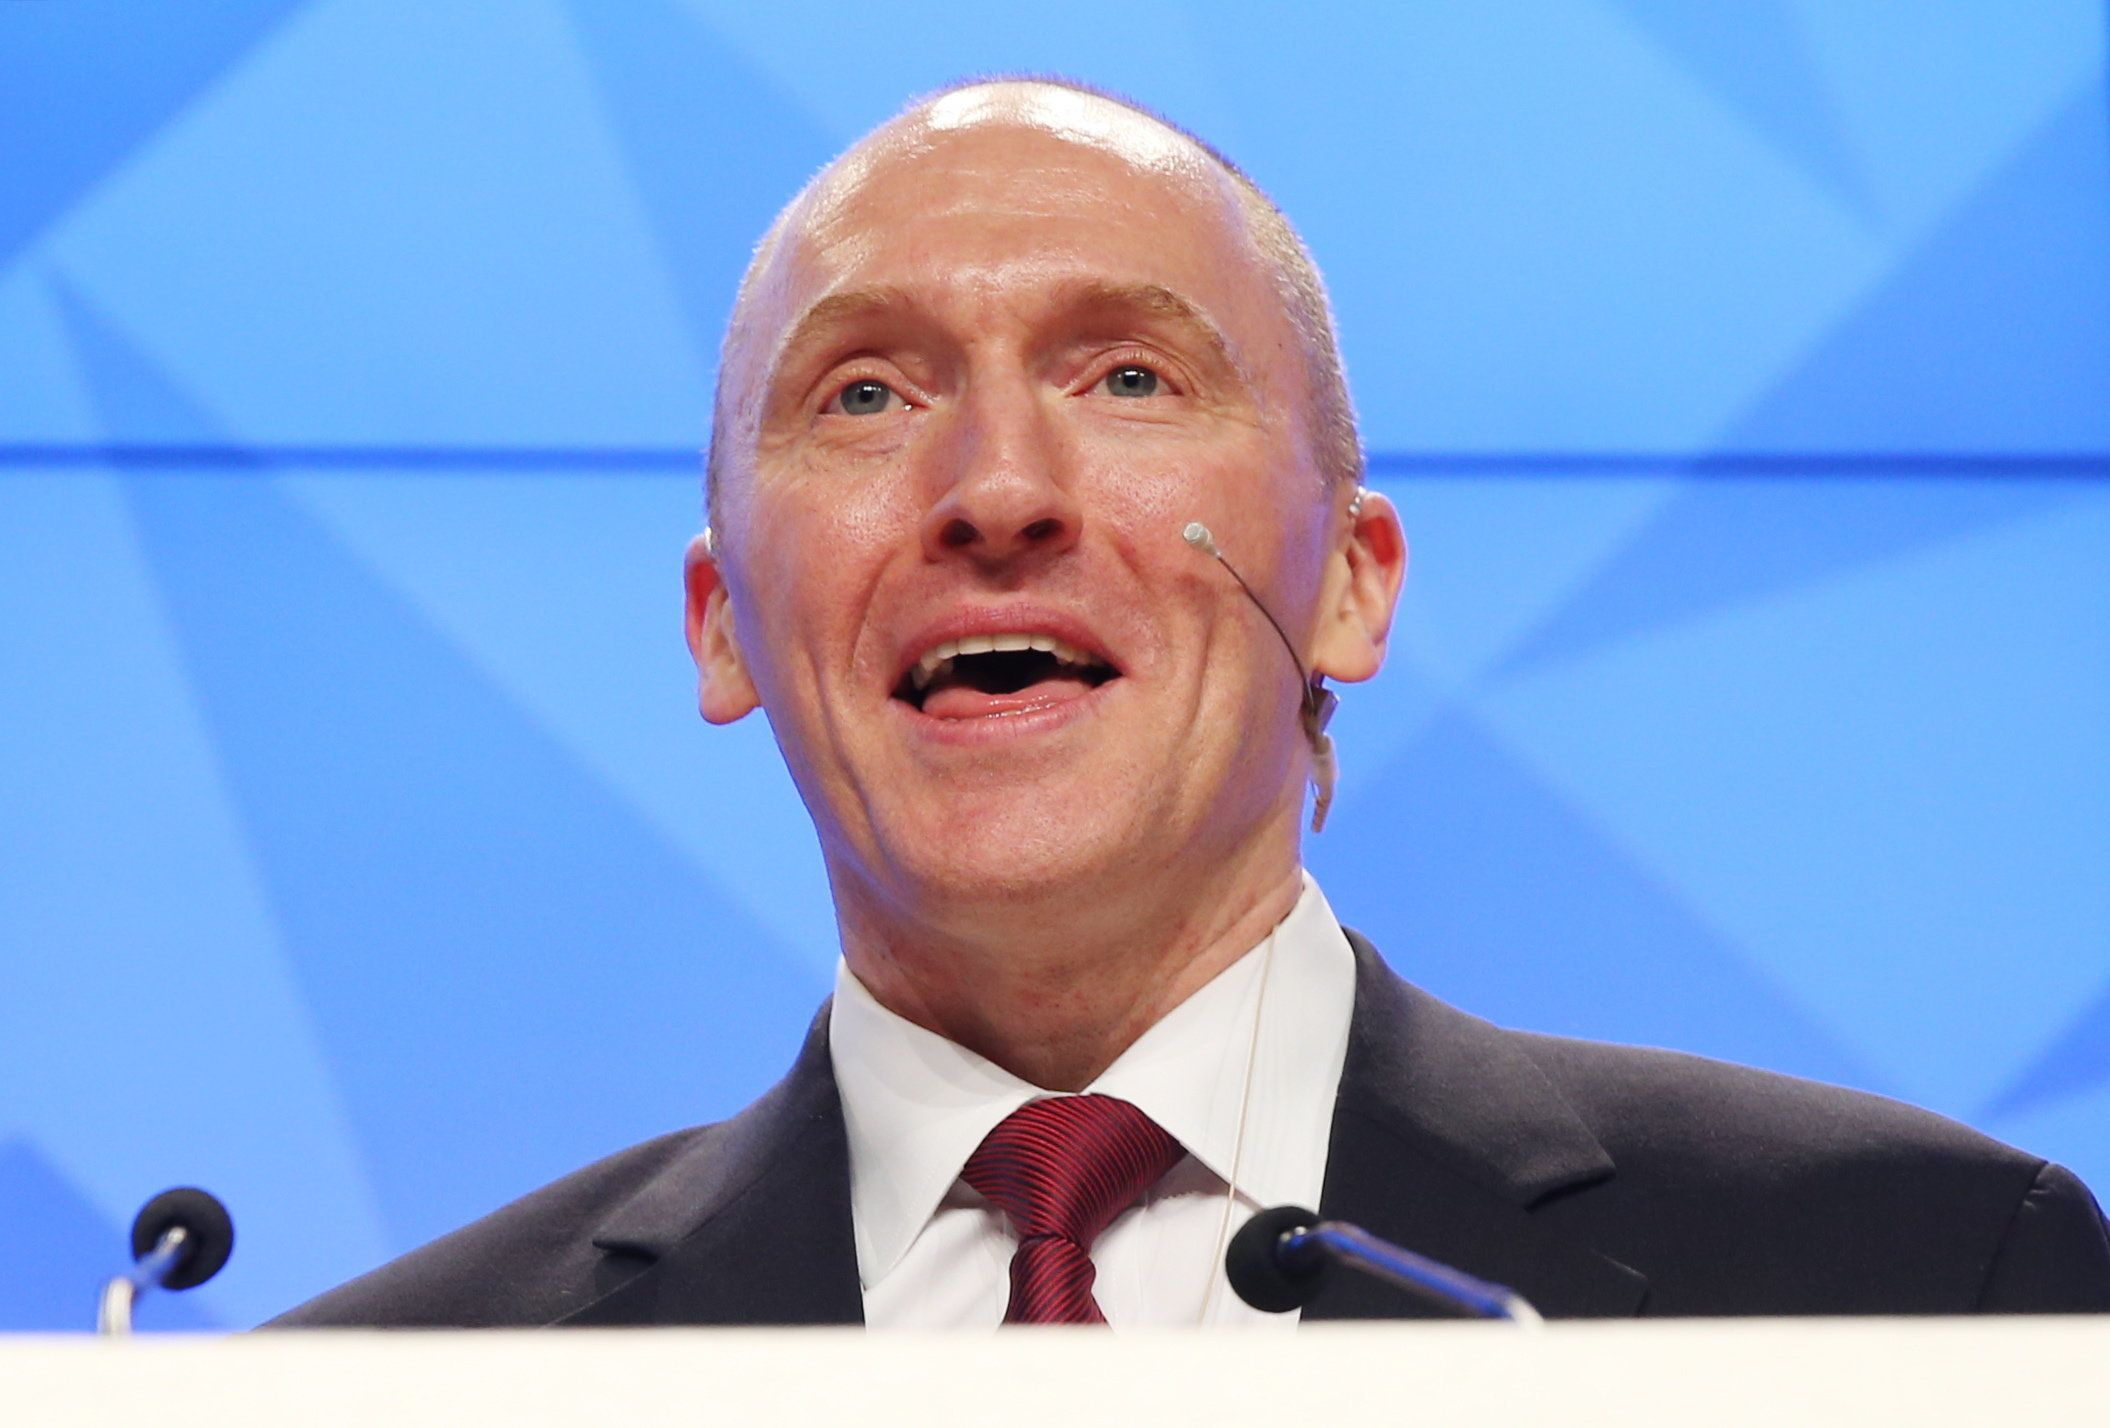 MOSCOW, RUSSIA - DECEMBER 12, 2016: Carter Page, Global Energy Capital LLC Managing Partner and a former foreign policy adviser to U.S. President-Elect Donald Trump, makes a presentation titled ' Departing from Hypocrisy: Potential Strategies in the Era of Global Economic Stagnation, Security Threats and Fake News' during his visit to Moscow. Artyom Korotayev/TASS (Photo by Artyom Korotayev\TASS via Getty Images)